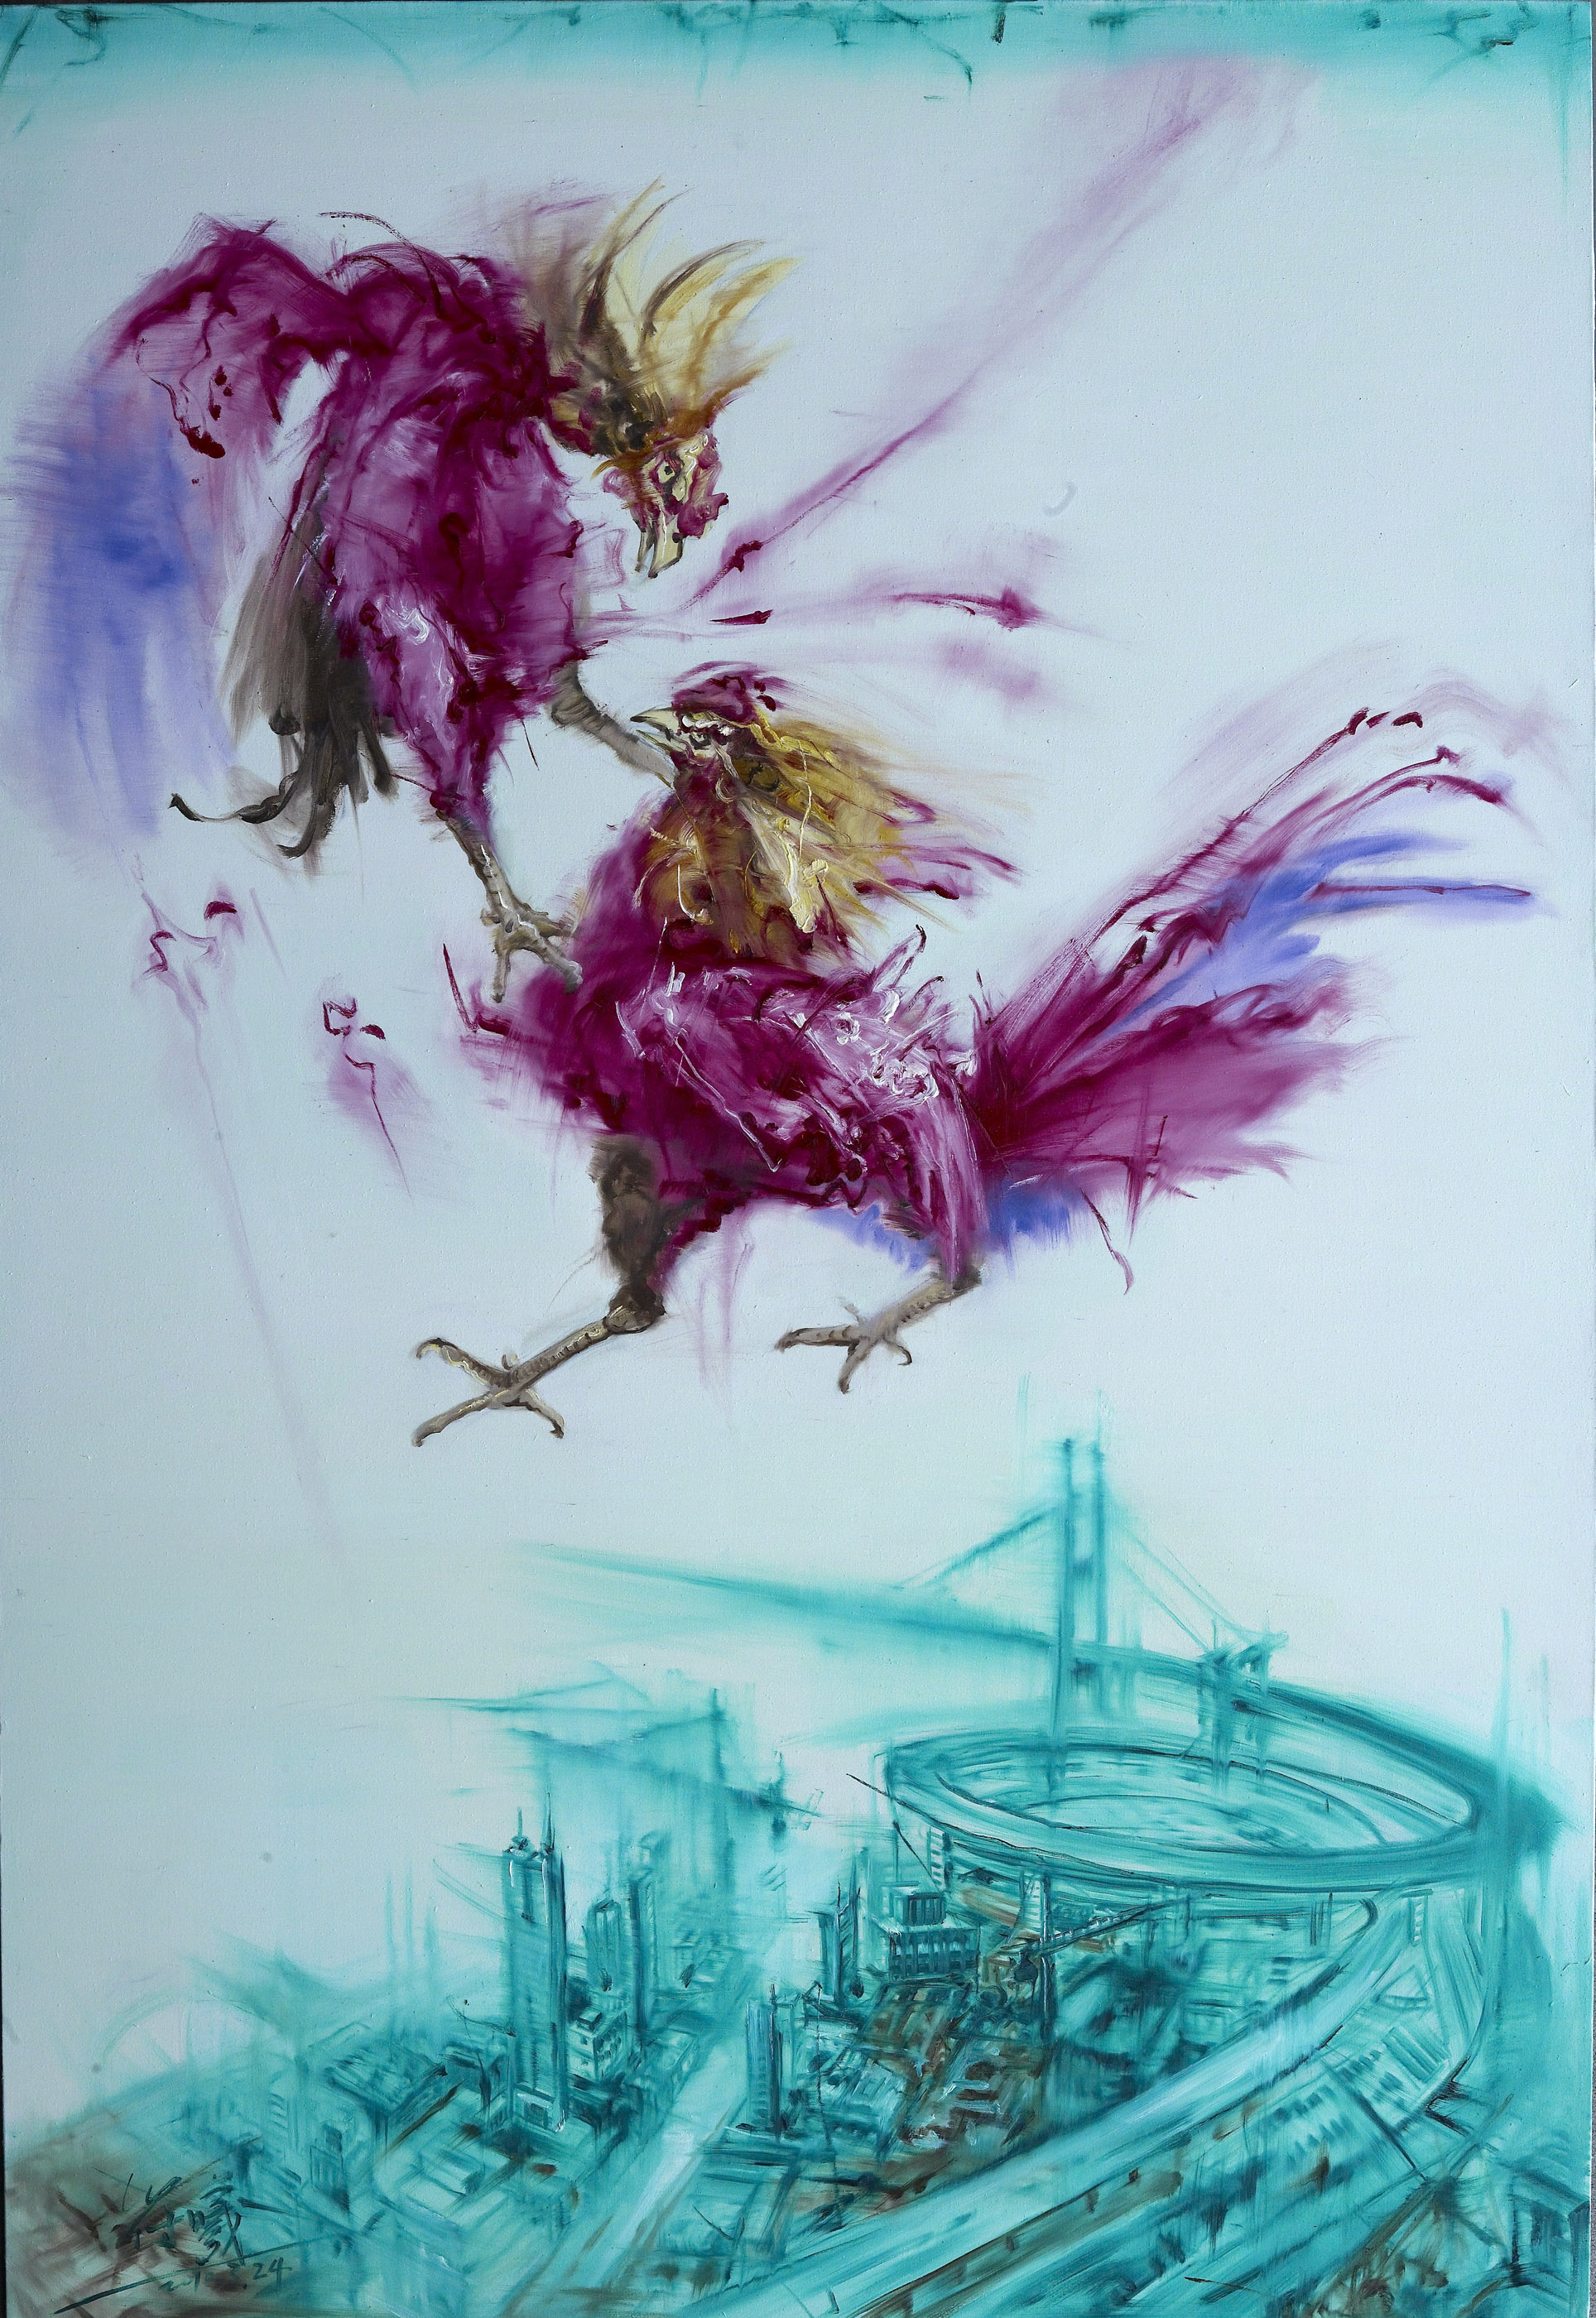 鸡飞(3)  Flying Rooster (3)